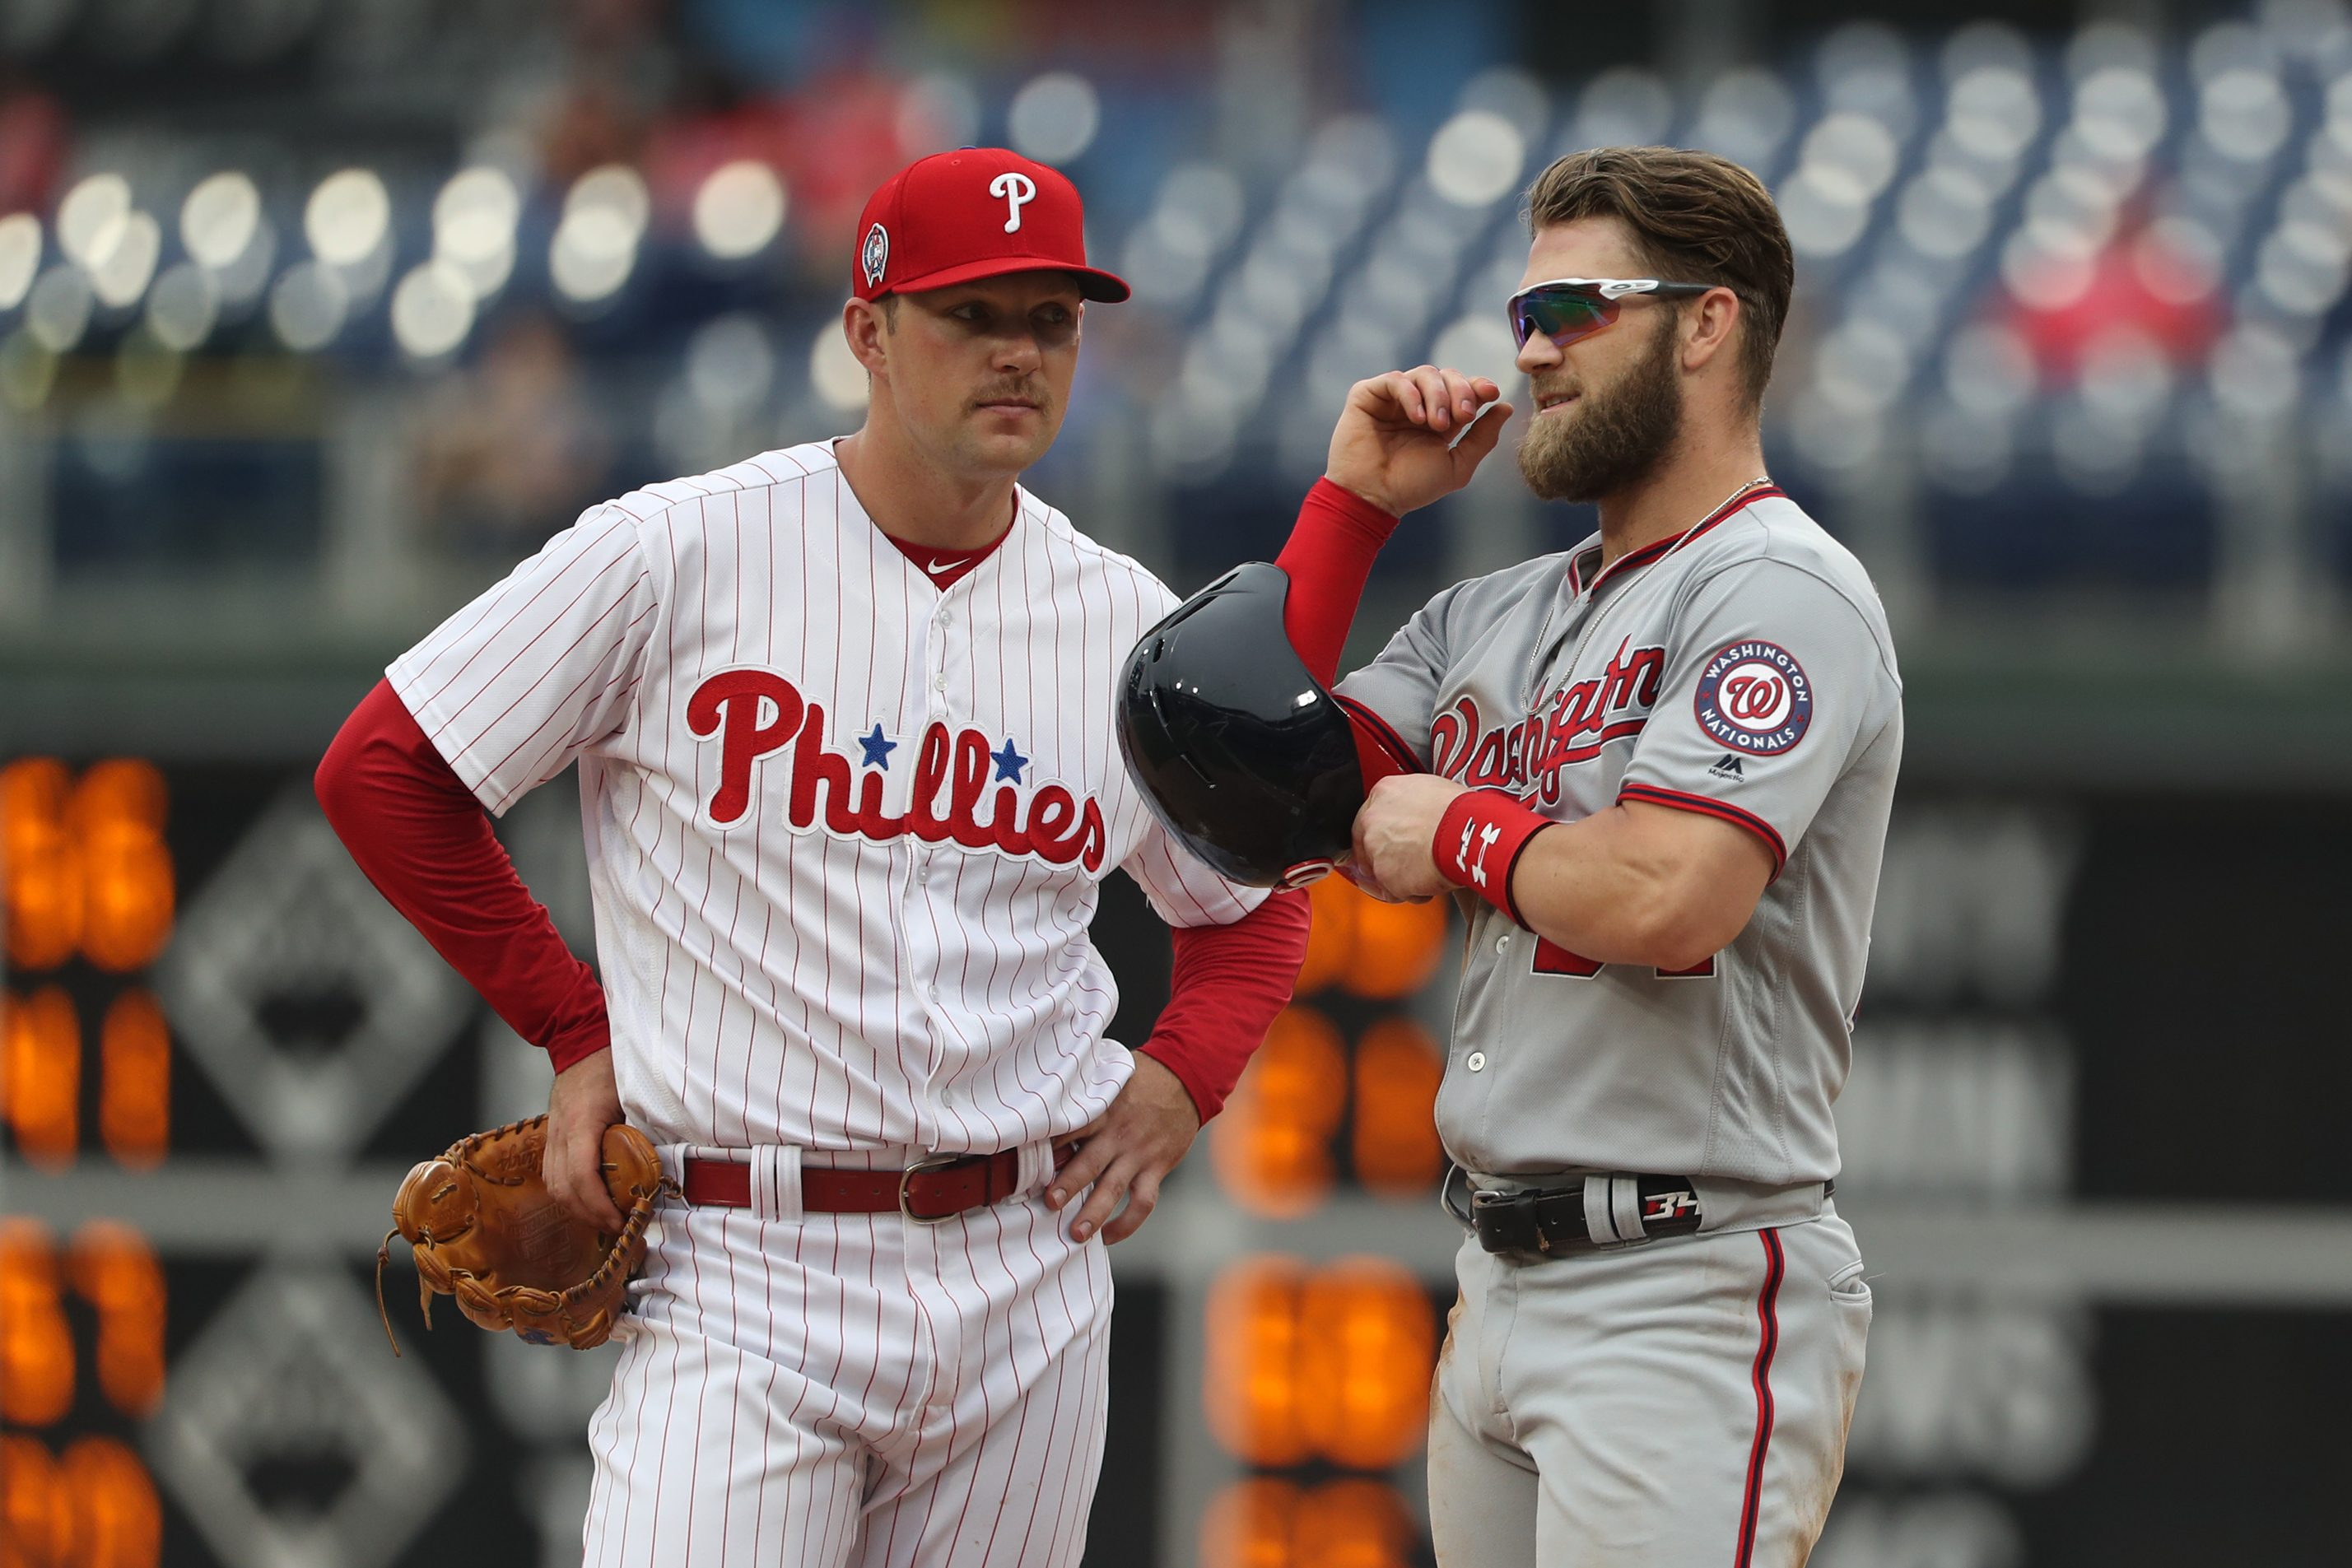 Rhys Hoskins (left) and Bryce Harper chat during a replay during a game on Sept. 11 vs. the Nationals on Sept. 11.